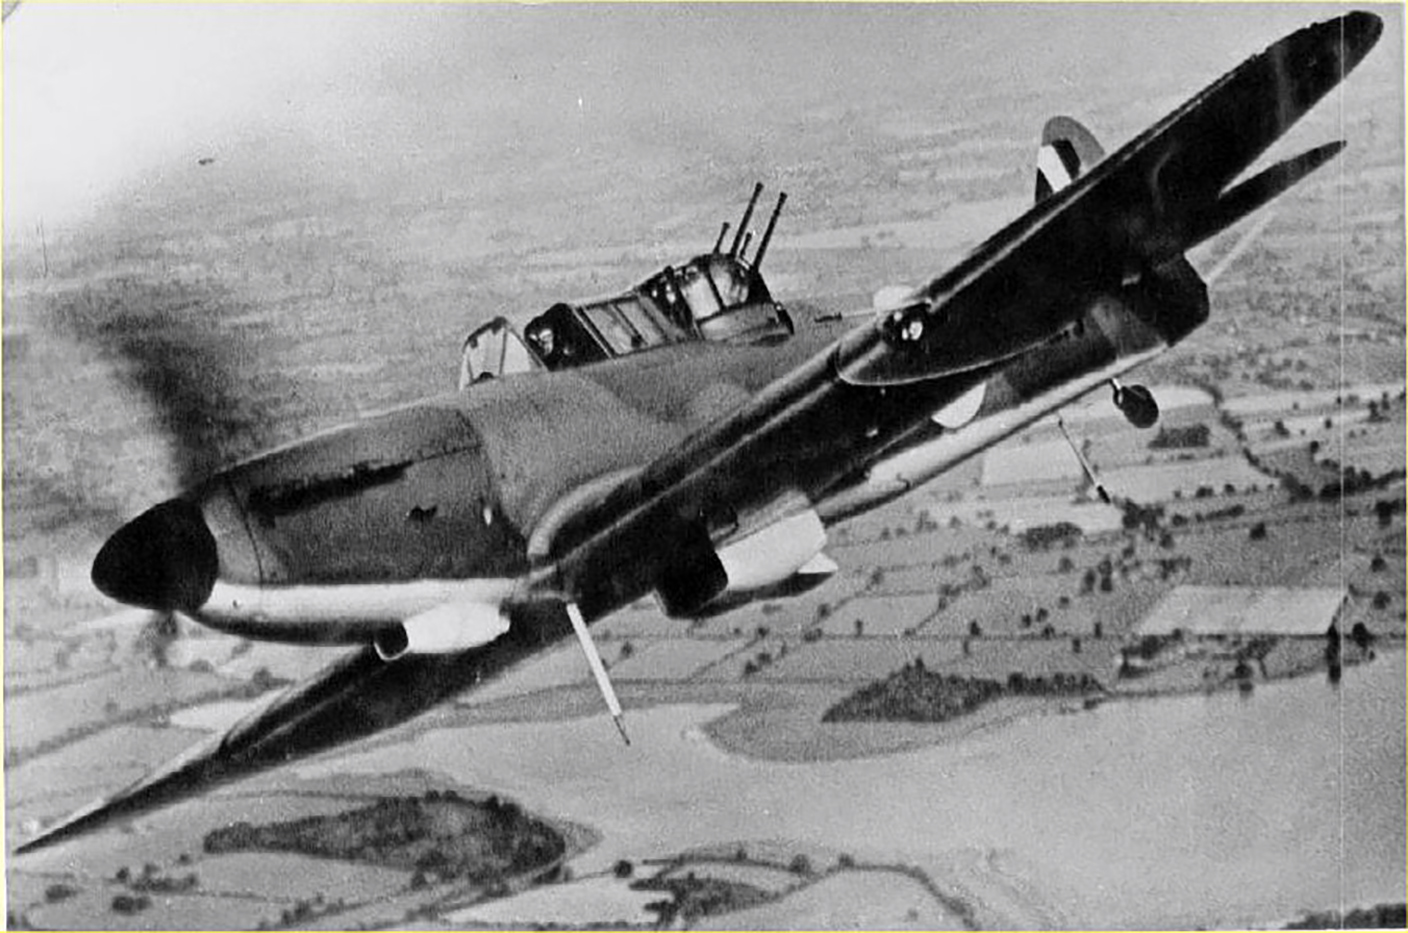 A Boulton Paul Defiant flies over a river basin. The aircraft's three-bladed all-metal, variable-pitch airscrew was driven by a Rolls Royce Merlin engine operating at a speed of 300 miles per hour [483 kilometres per hour]. The Oleo-pneumatic undercarriage retracted sideways into the wing centre portion. PHOTO: Royal Air Force